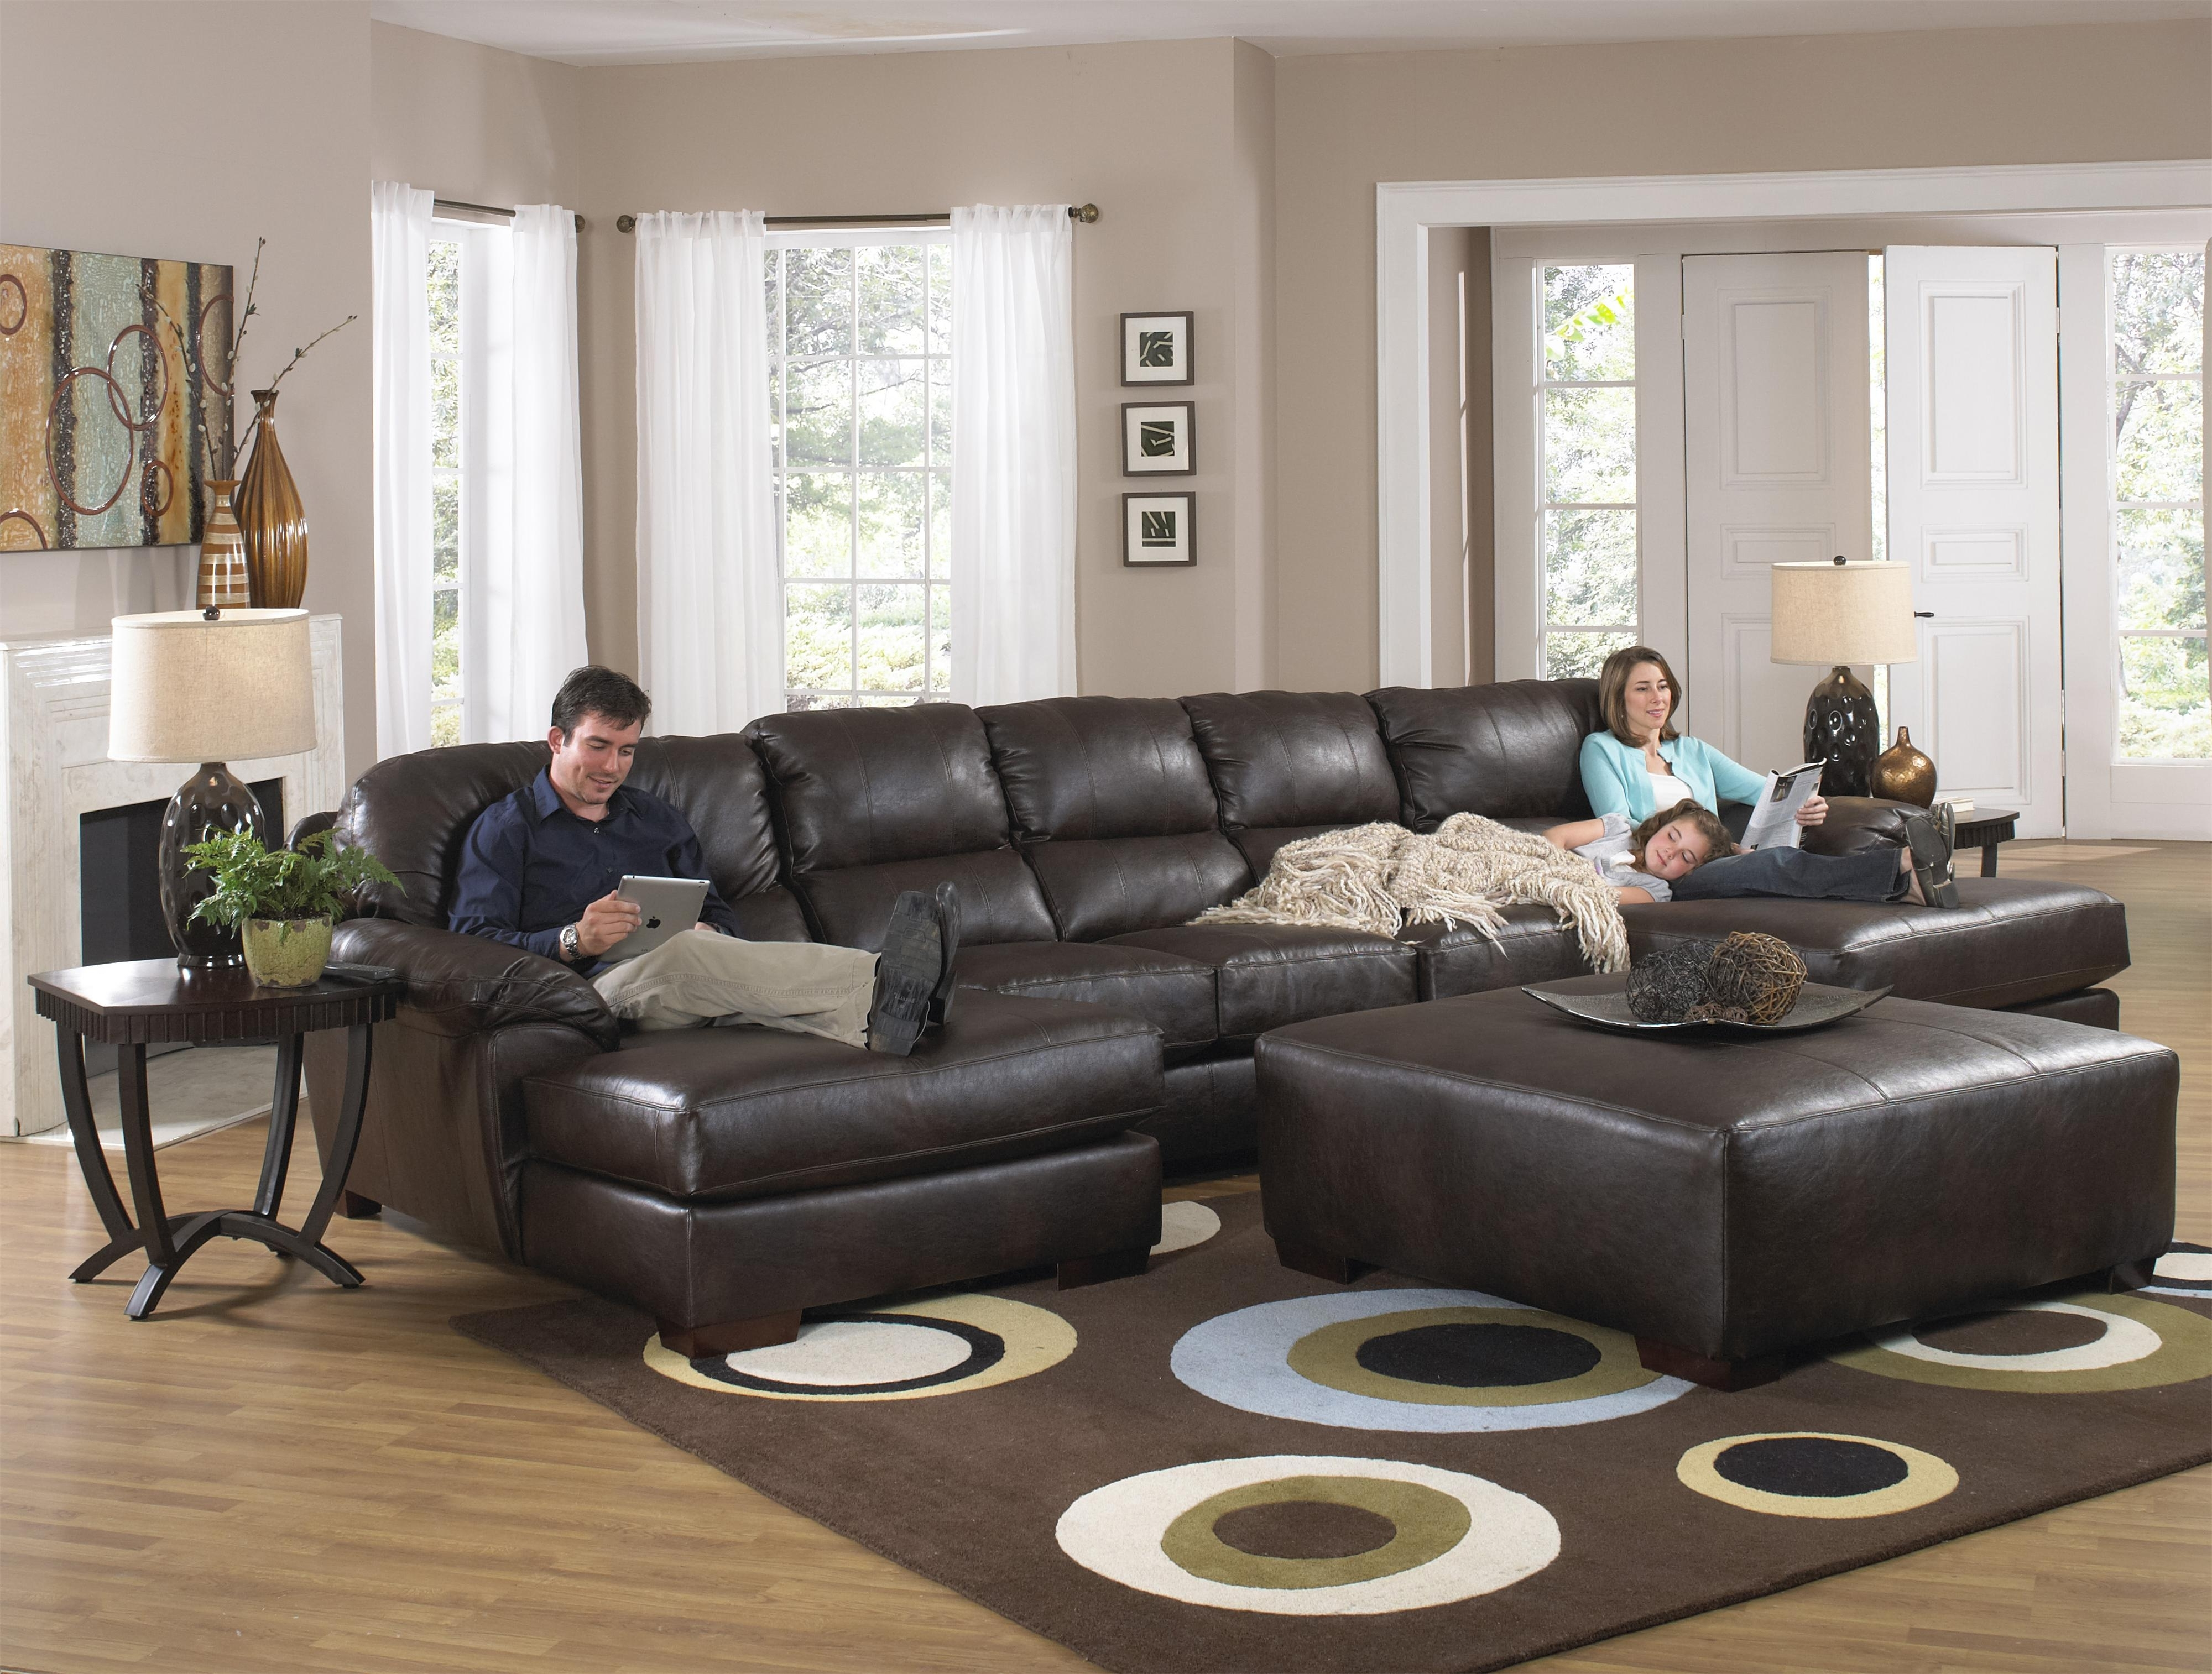 Sectional Sofas With Double Chaise Within 2017 Two Chaise Sectional Sofa With Five Total Seatsjackson (View 11 of 15)